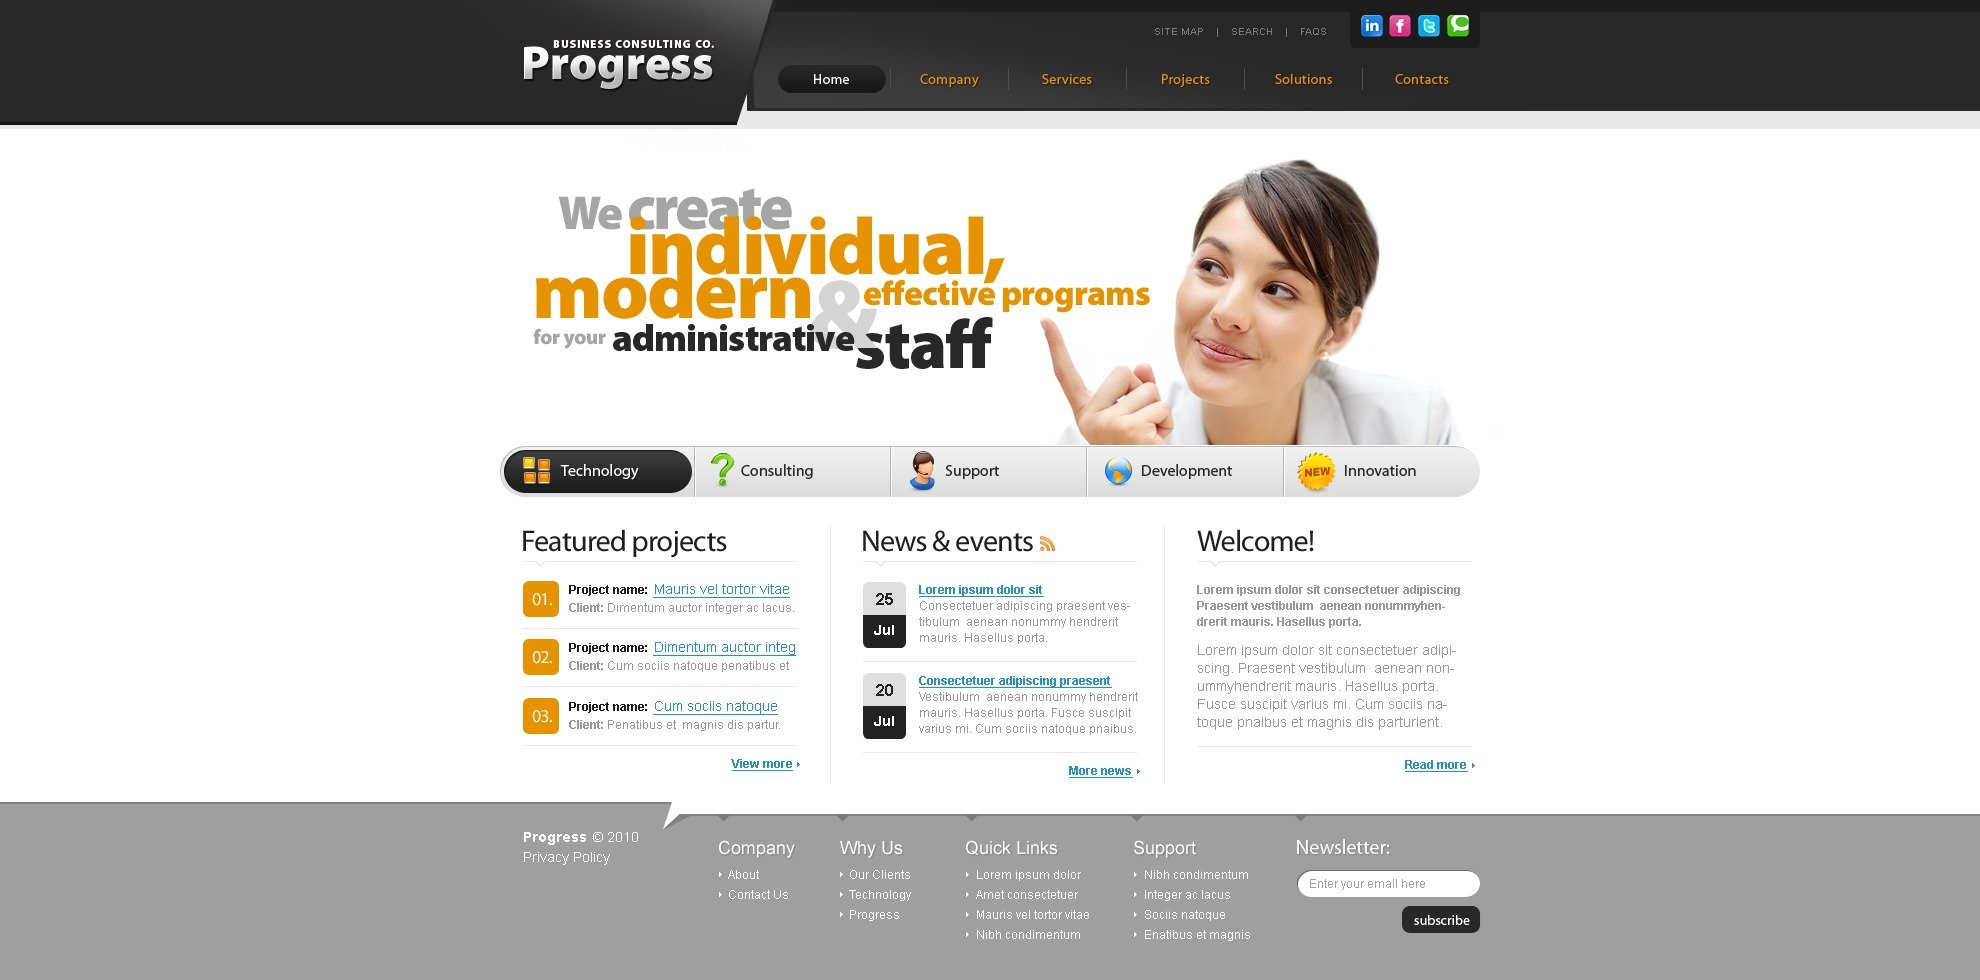 The Progress Business Company PSD Design 54462, one of the best PSD templates of its kind (business, flash 8, wide), also known as progress business company PSD template, corporate solutions PSD template, innovations PSD template, contacts PSD template, service PSD template, support PSD template, information dealer PSD template, stocks PSD template, team PSD template, success PSD template, money PSD template, marketing PSD template, director PSD template, manager PSD template, analytics PSD template, planning PSD template, limited PSD template, office PSD template, sales and related with progress business company, corporate solutions, innovations, contacts, service, support, information dealer, stocks, team, success, money, marketing, director, manager, analytics, planning, limited, office, sales, etc.